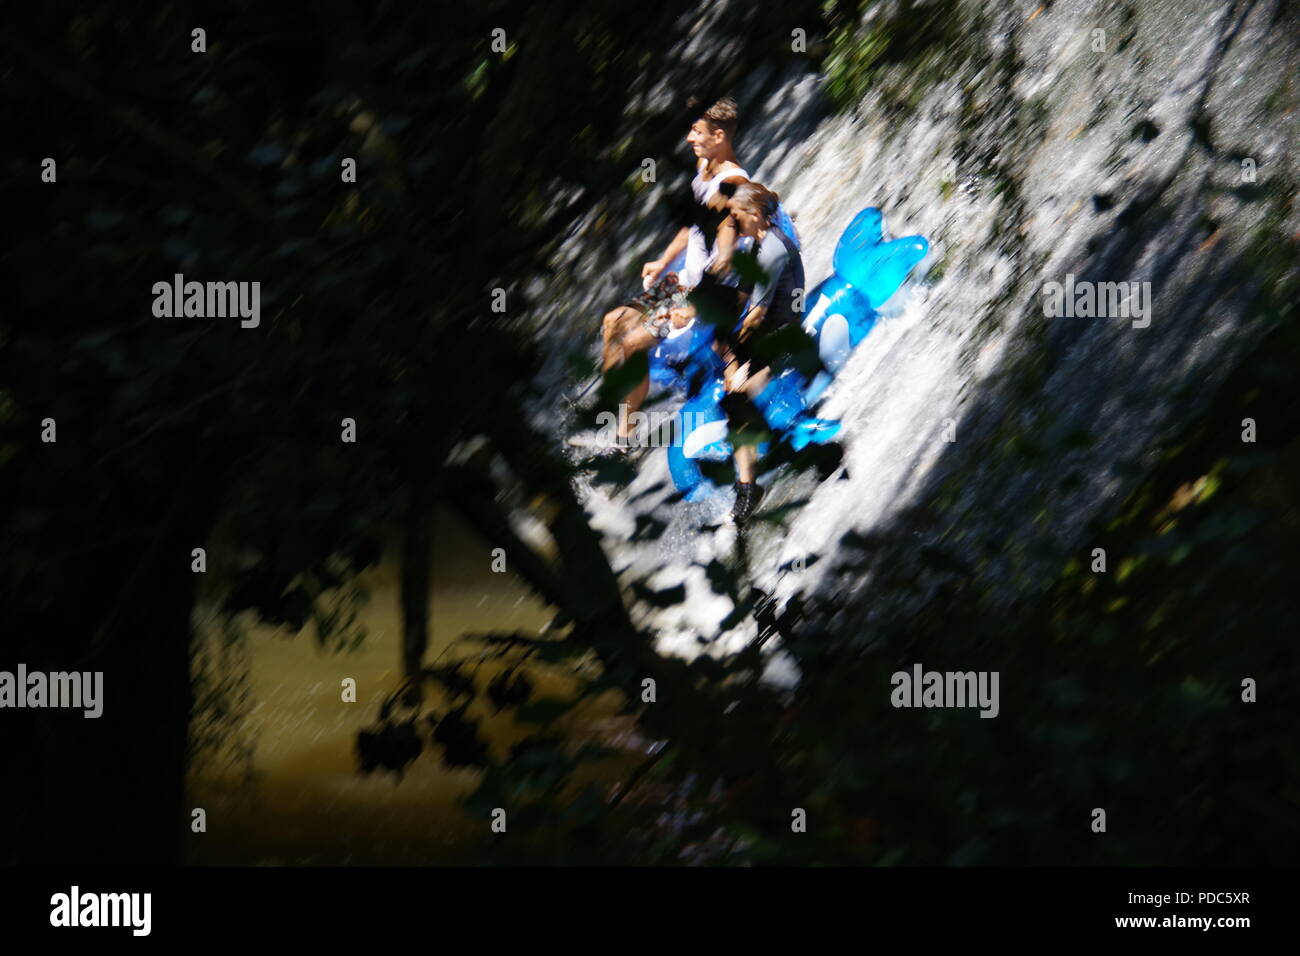 Teenagers Sliding Down a Concrete Waterfall on Inflatables During a Heat Wave. The Byes Riverside Park, Sidmouth, East Devon, UK. August, 2018. - Stock Image